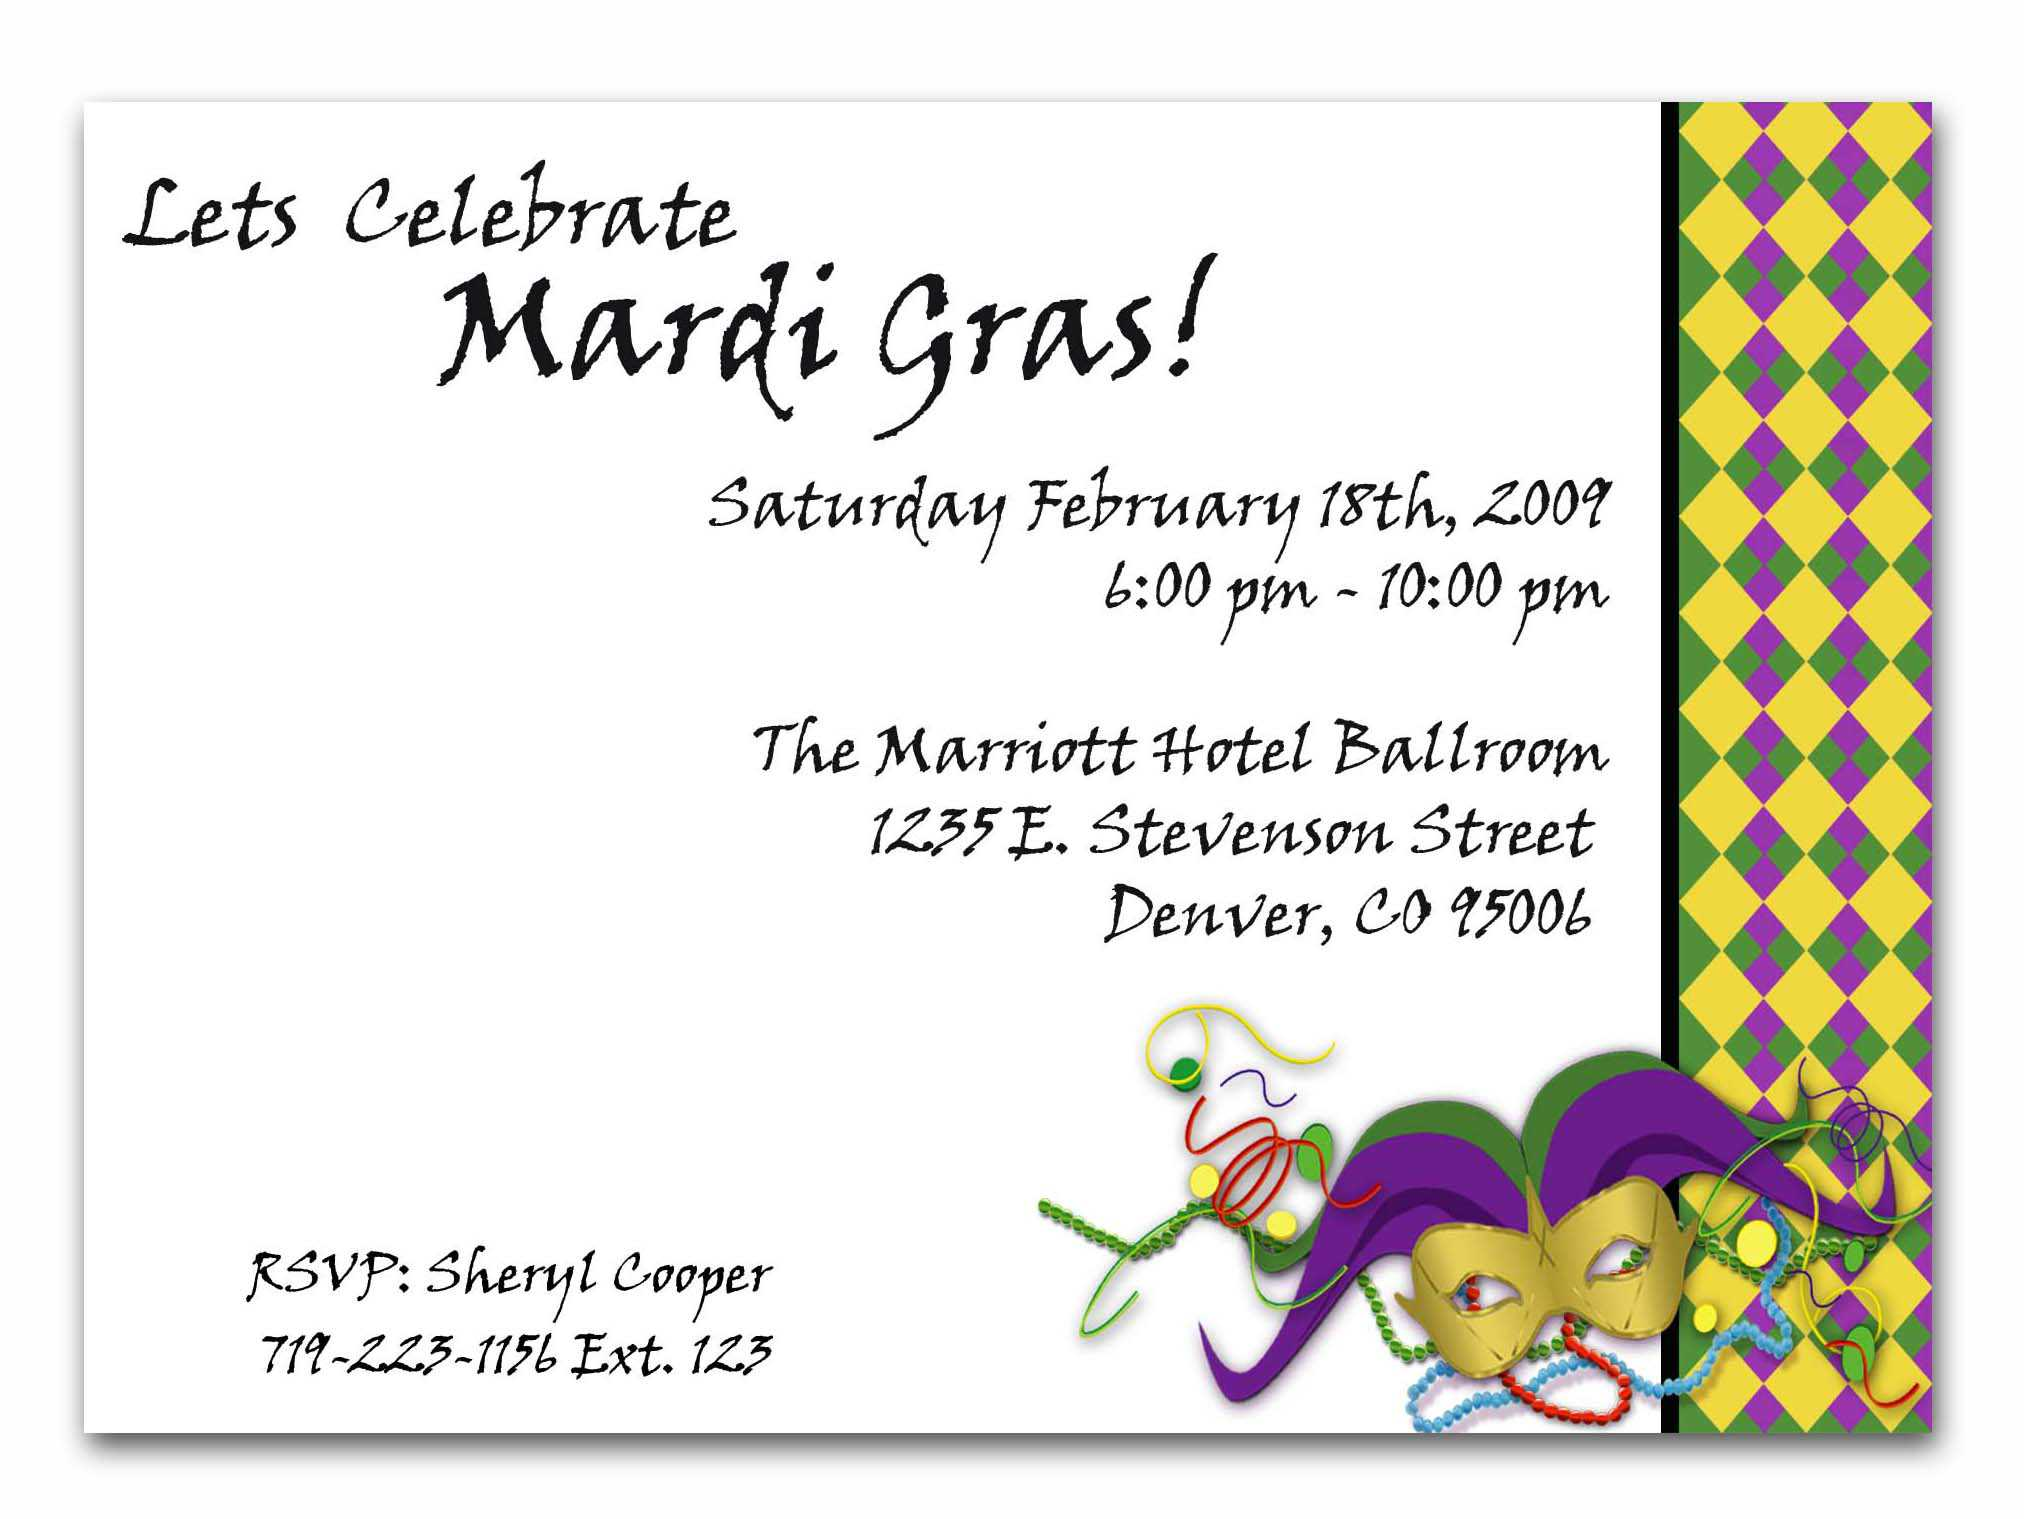 Mardi Gras Party Themes & Themed Invitations